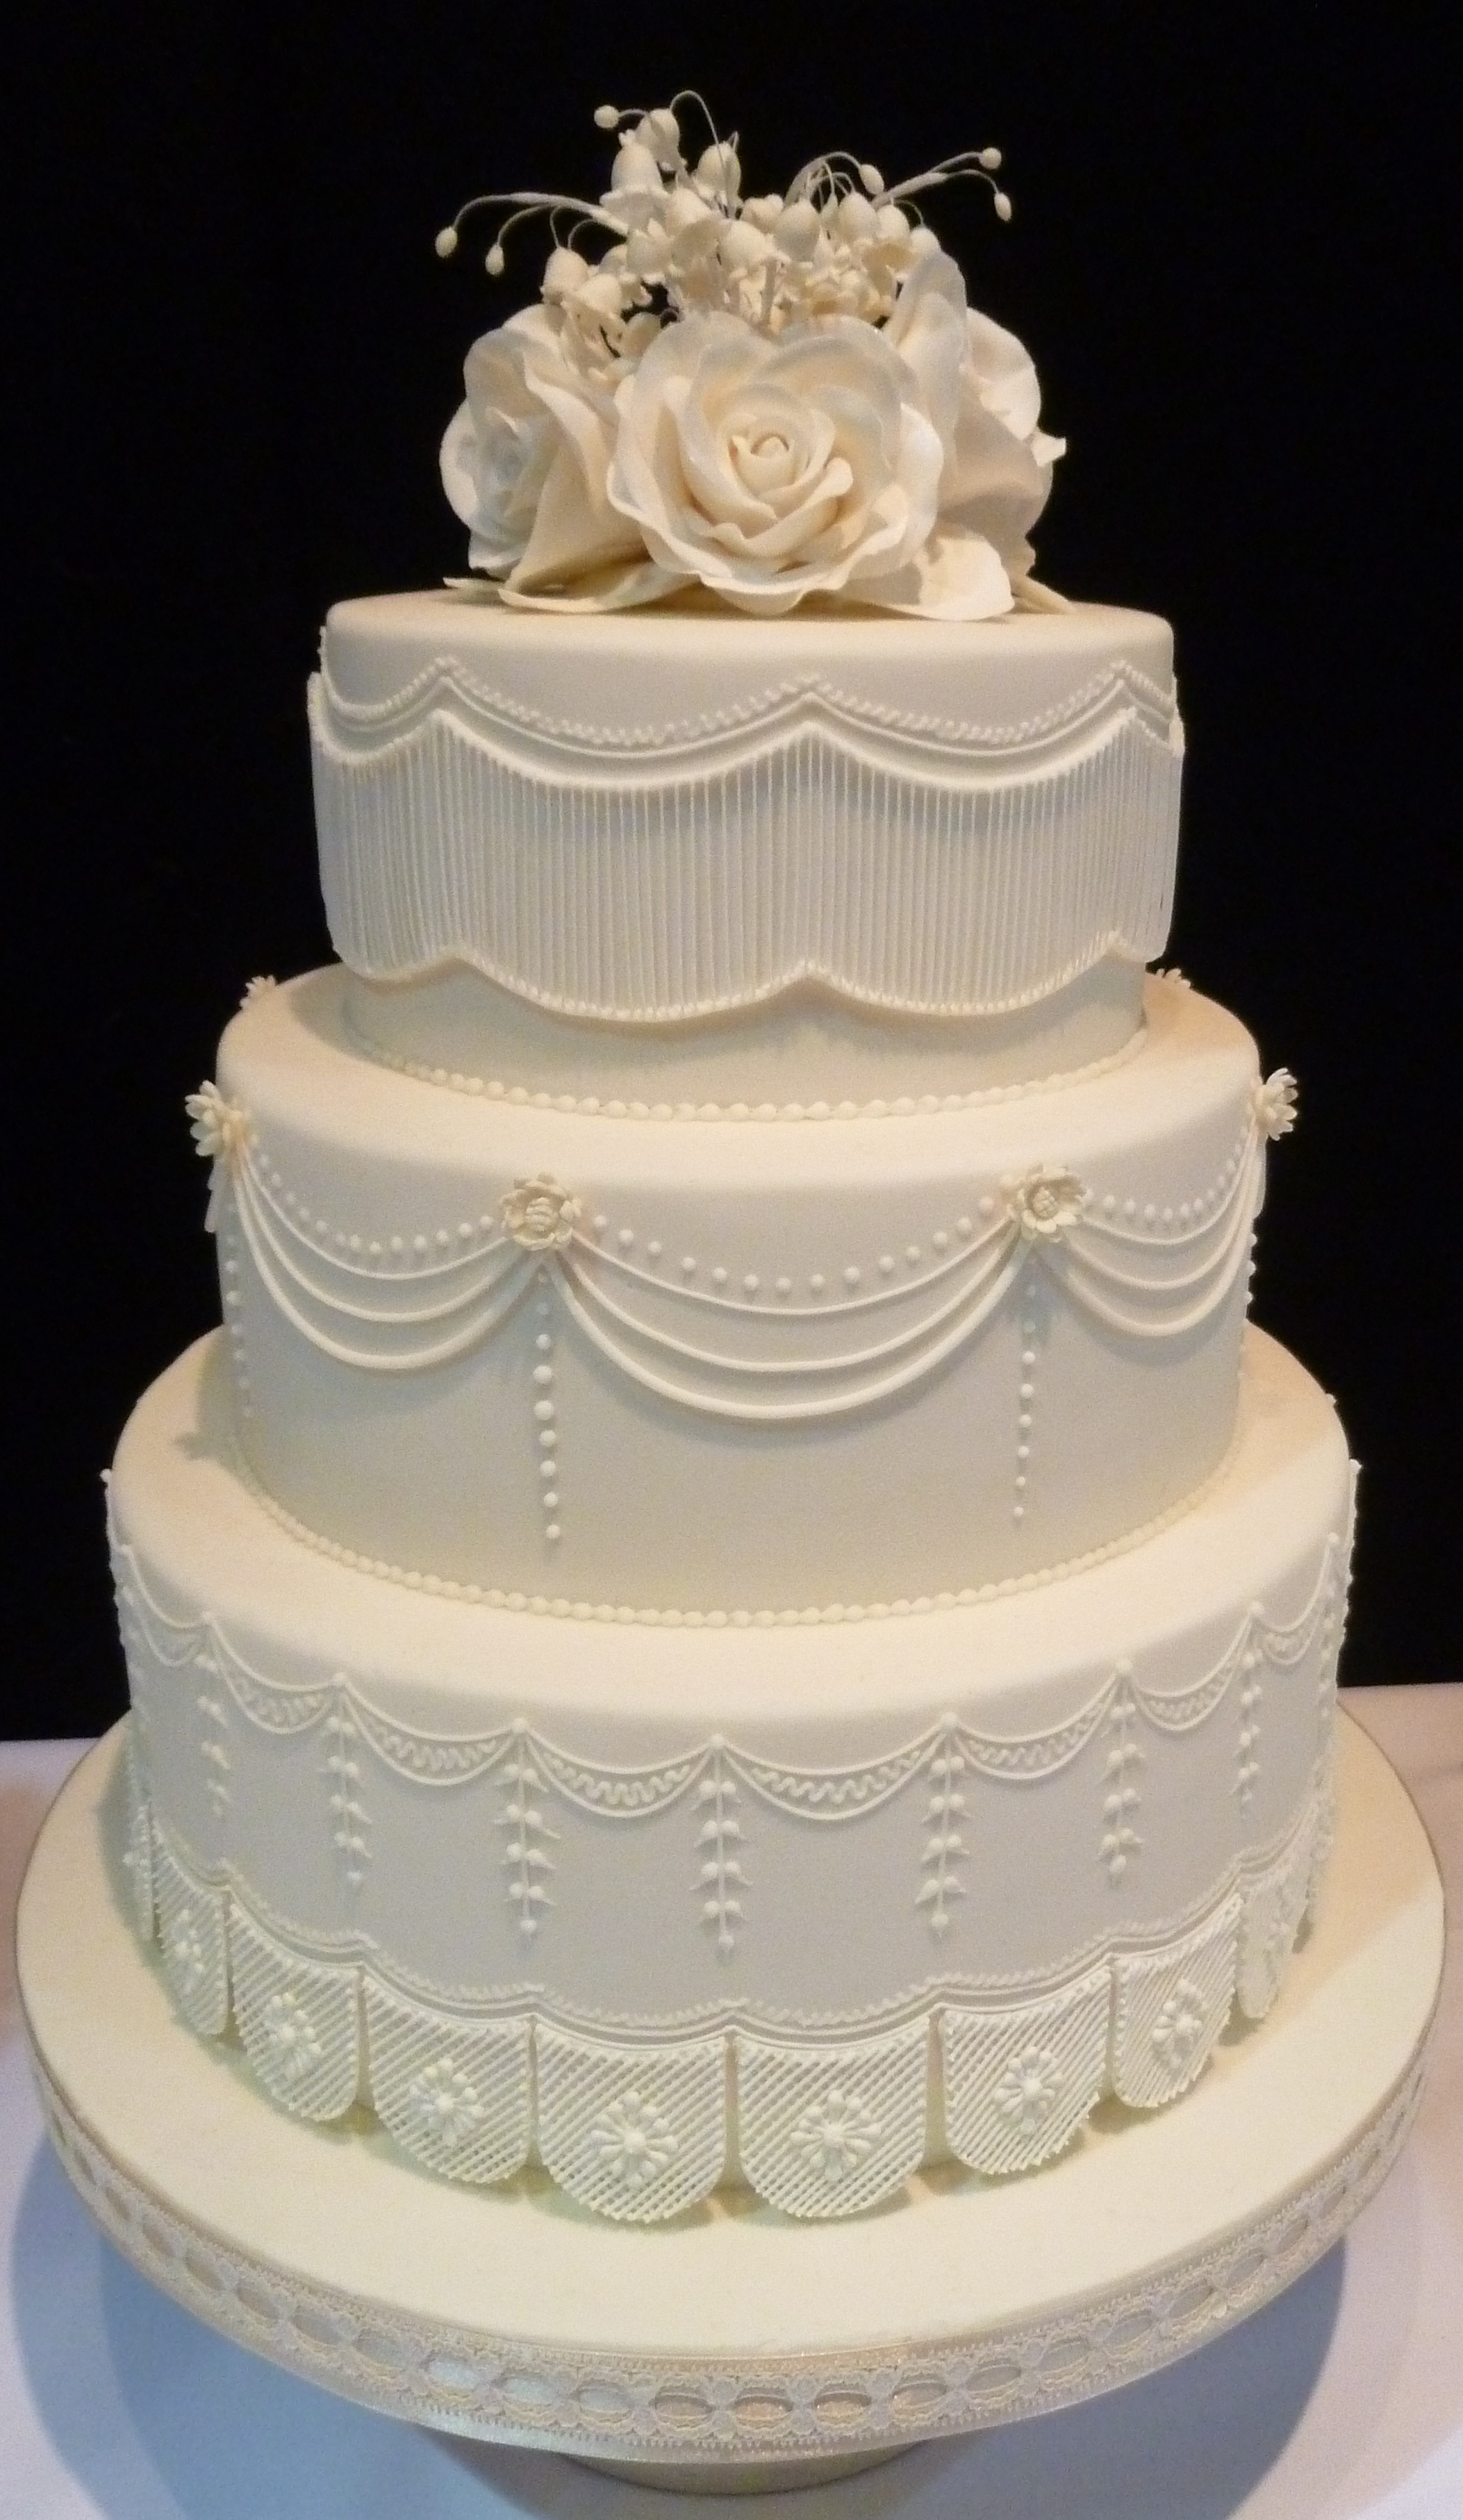 wedding cake – Cake blog with recipes and reviews | Cake Takes the ...